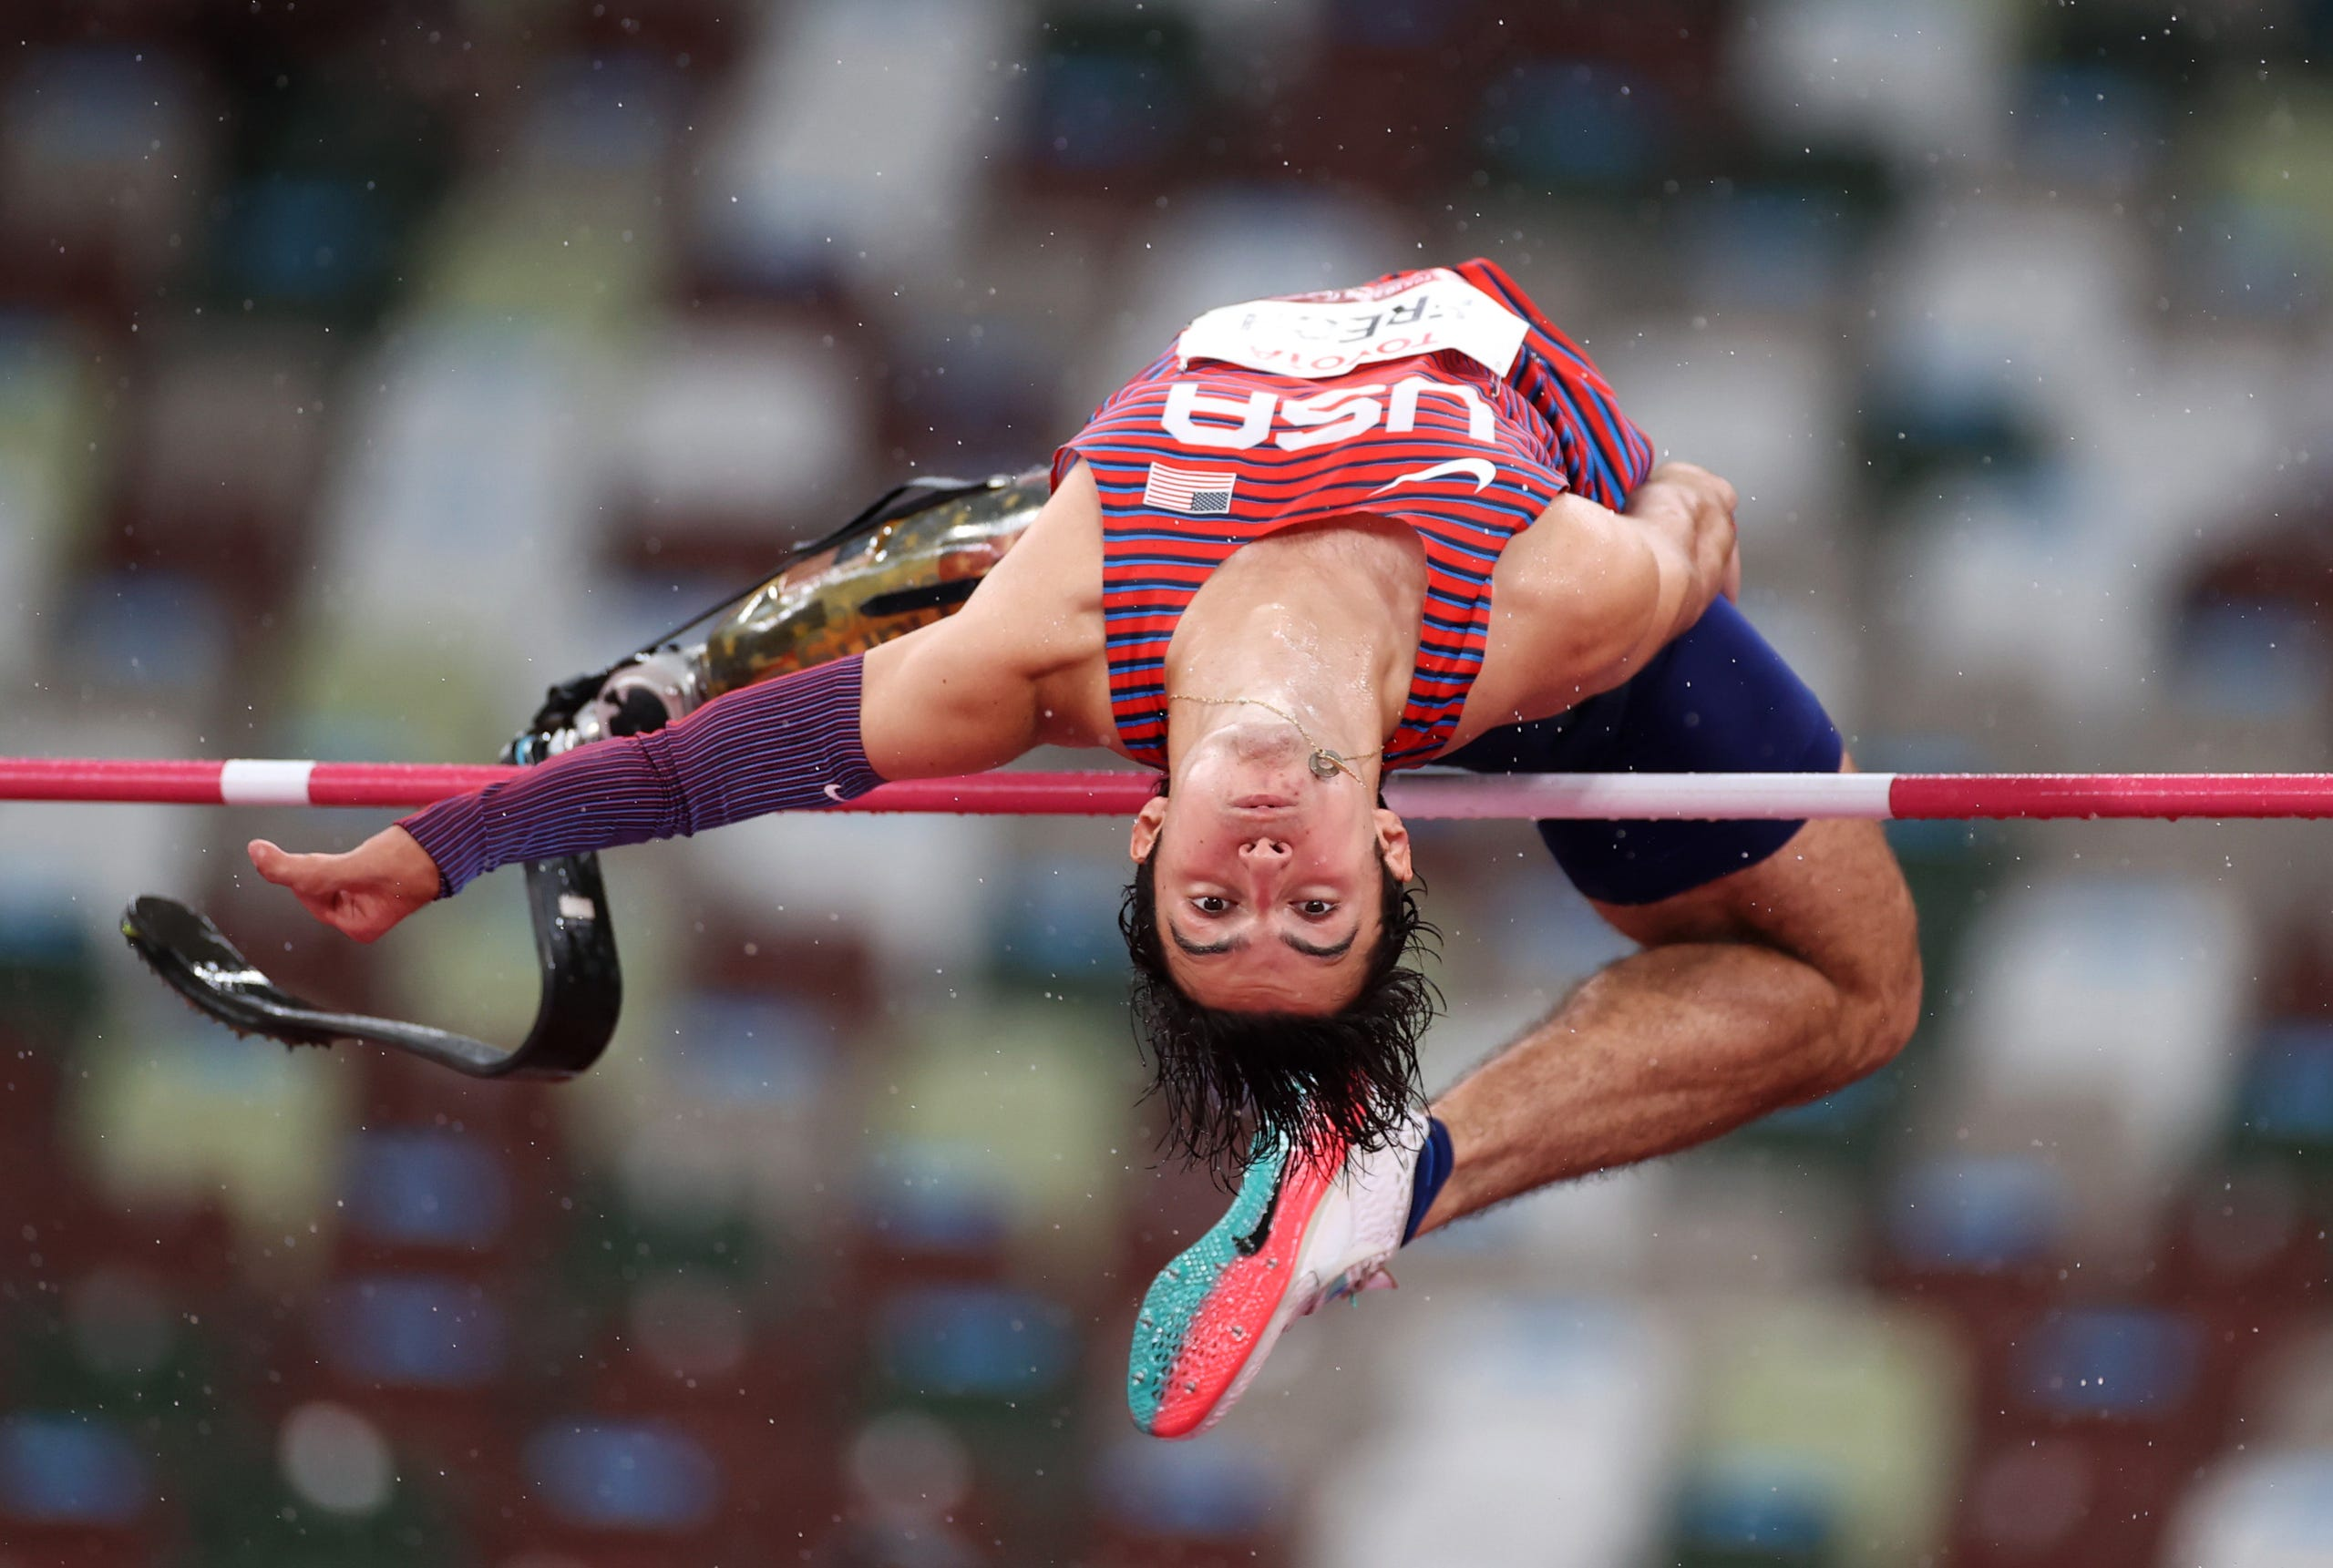 August 31, 2021: Ezra Frech of Team United States competes in the Men's High Jump T42 on day 7 of the Tokyo 2020 Paralympic Games at Olympic Stadium in Tokyo, Japan.